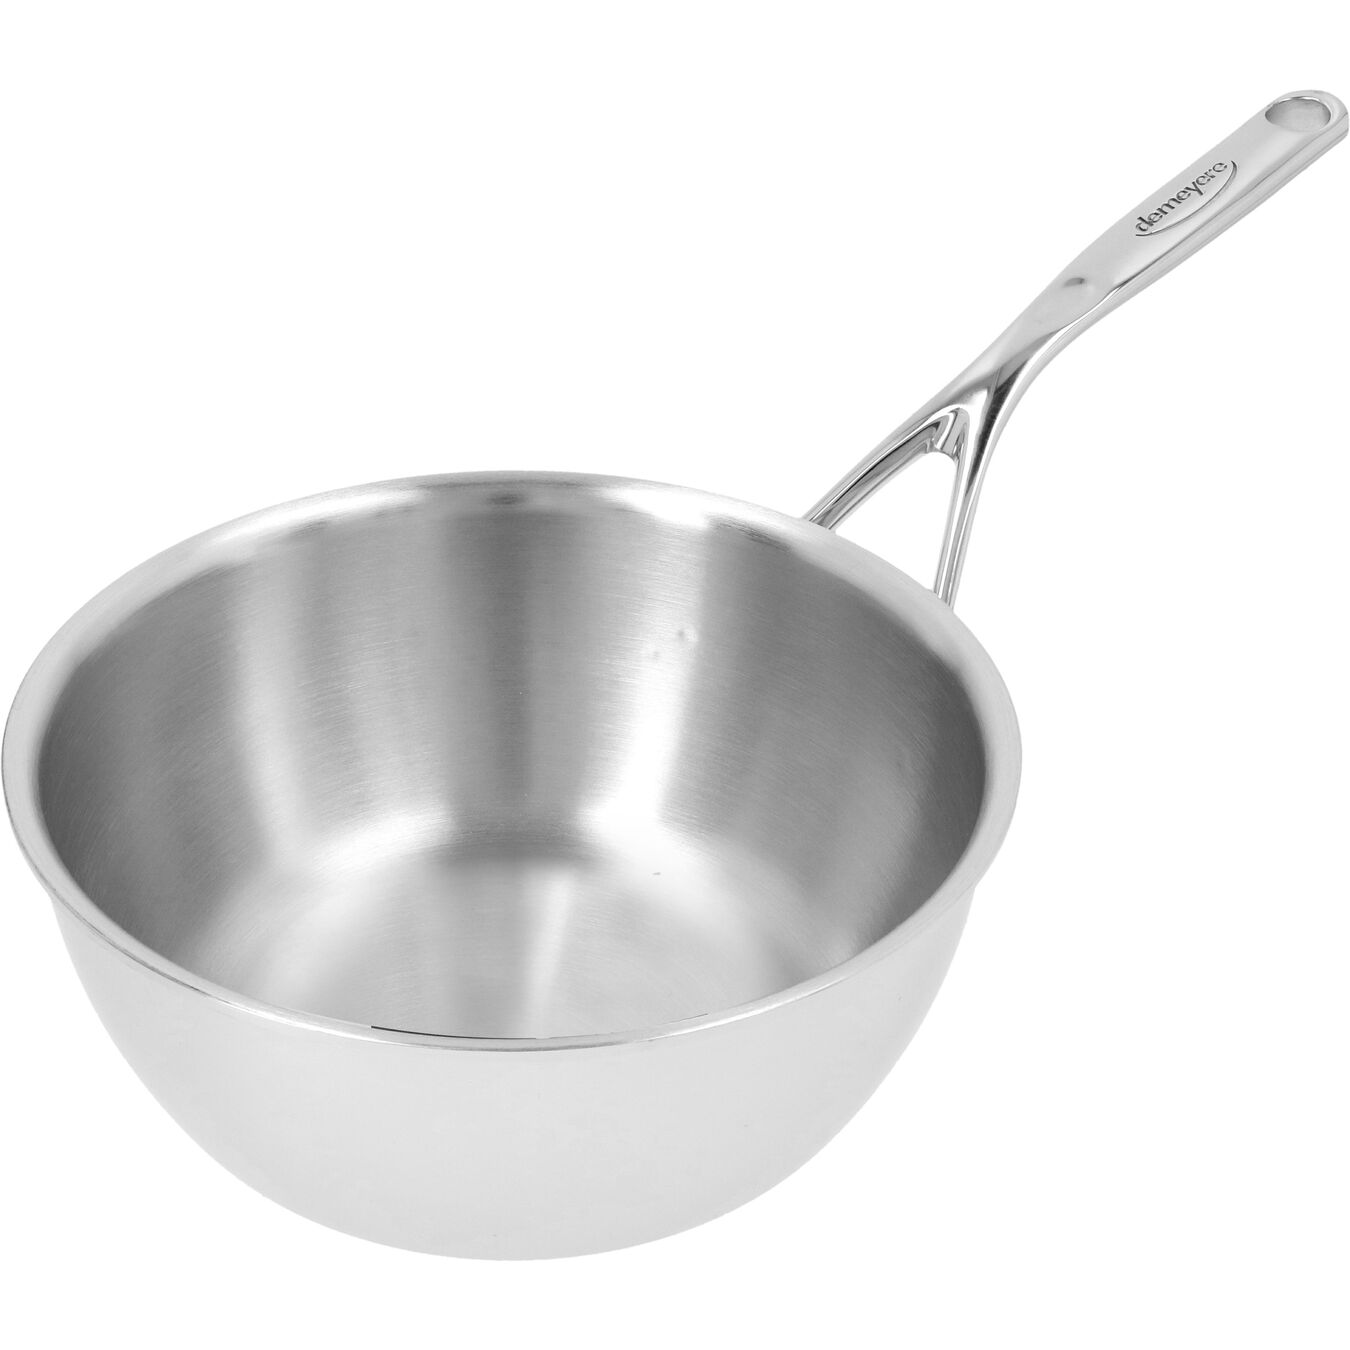 Sauteuse conique 22 cm, Inox 18/10,,large 3